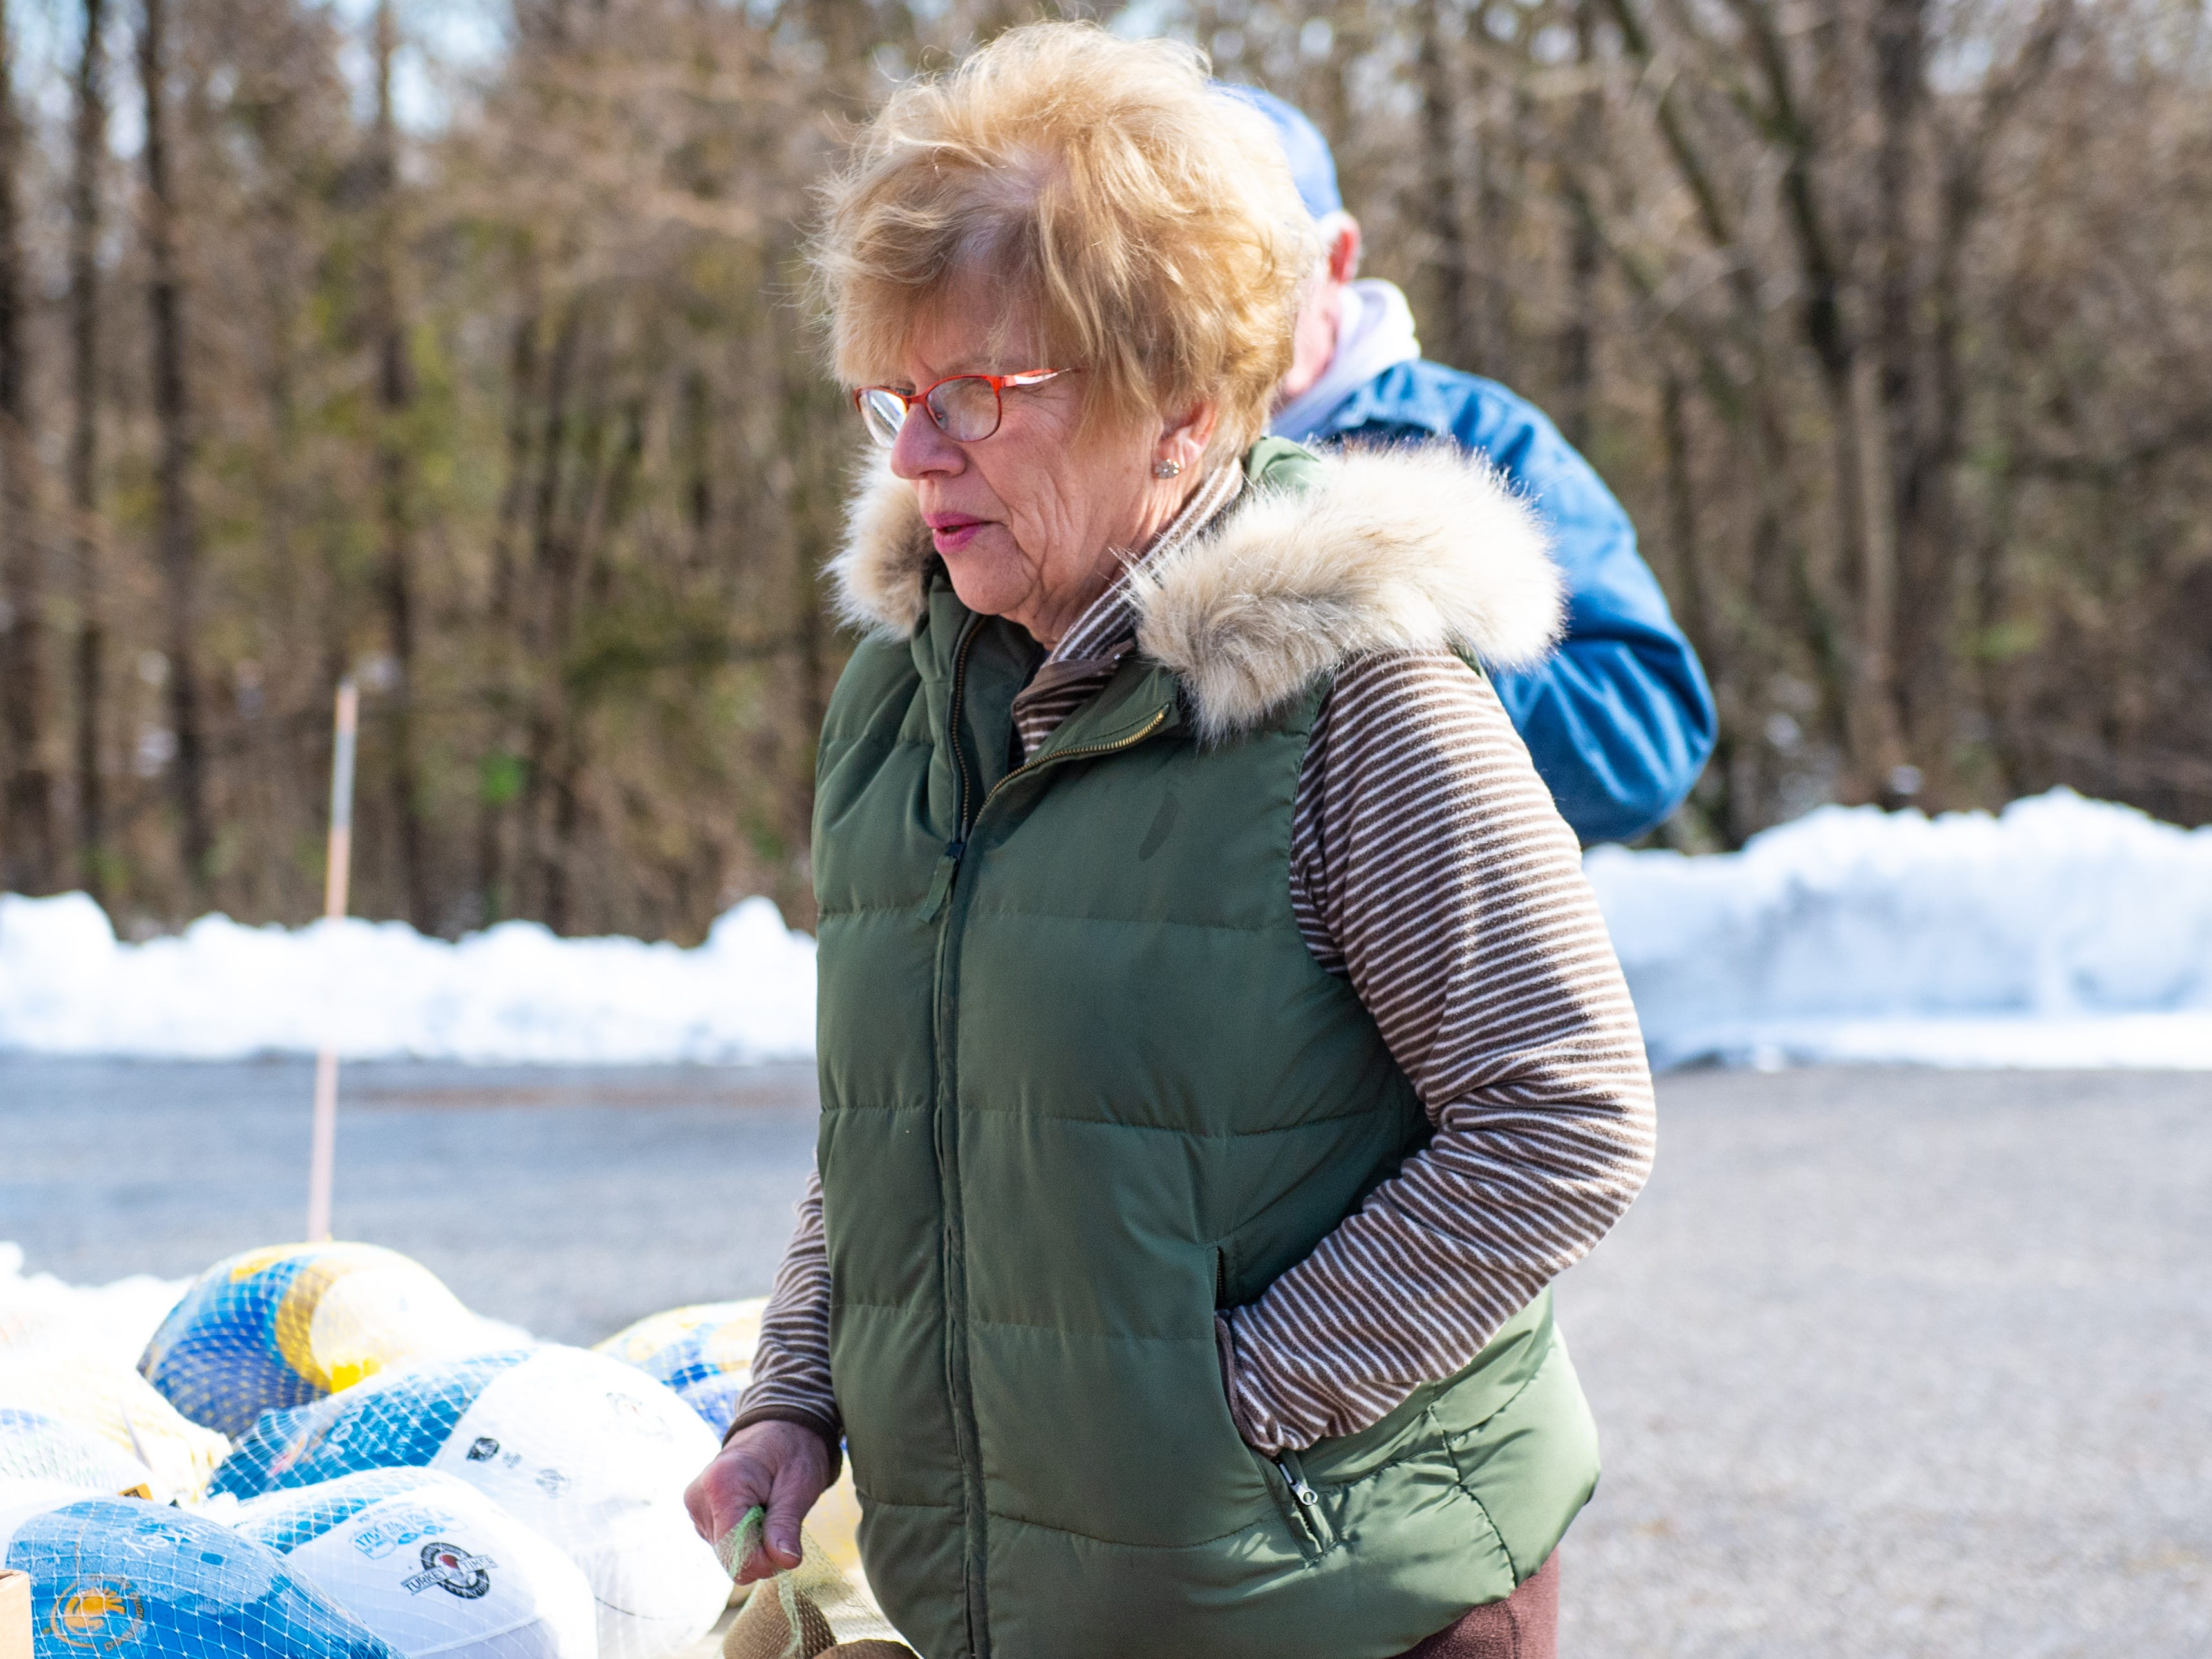 Sandy Neff waits for the next visitor to drive up, so she can hand them potatoes during the Thanksgiving food giveaway provided by New Hope Ministries, November 16, 2018.